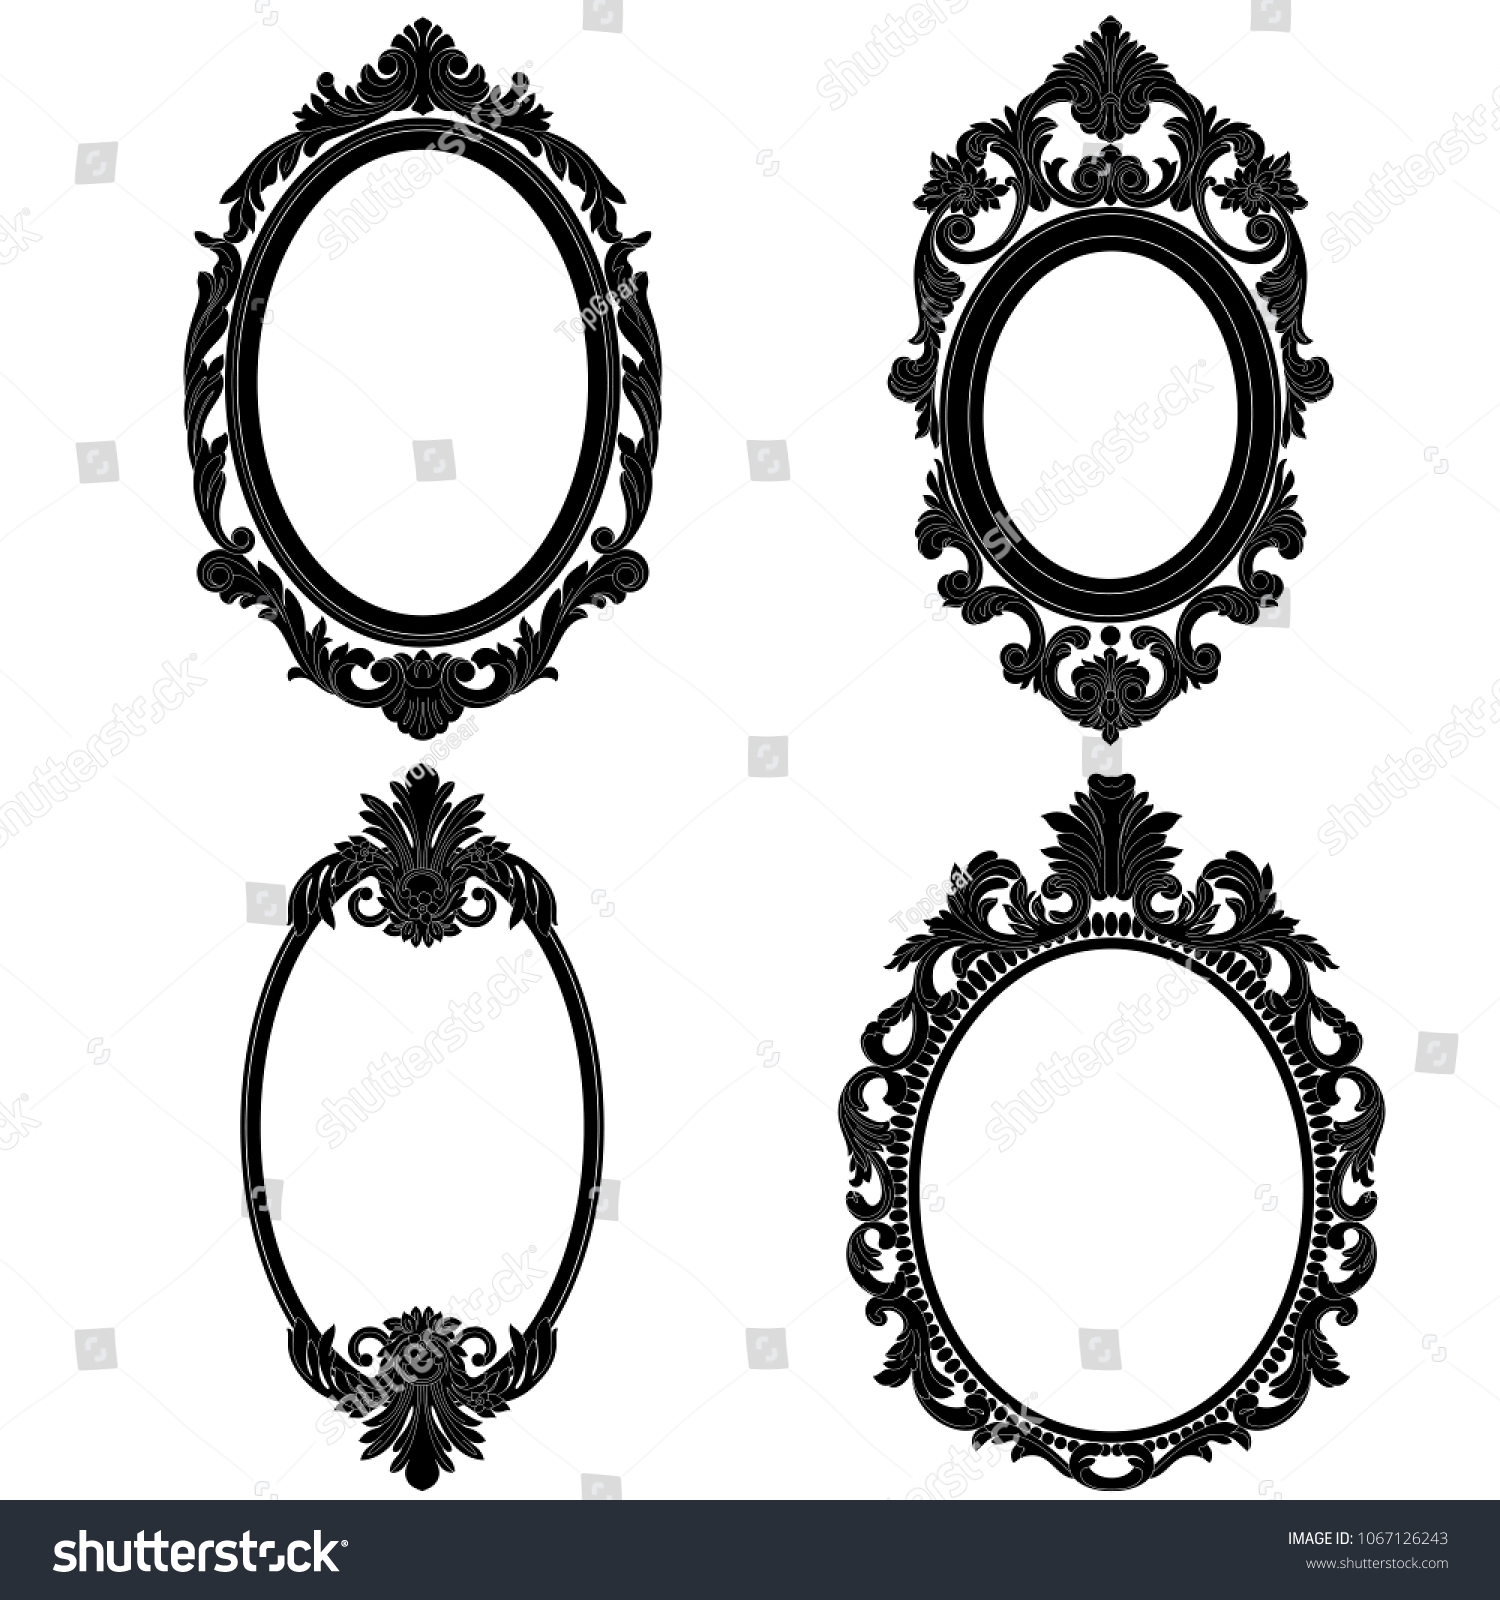 Antique Oval Picture Frames. Stock Photo - Vintage Silver Oval Frame ...